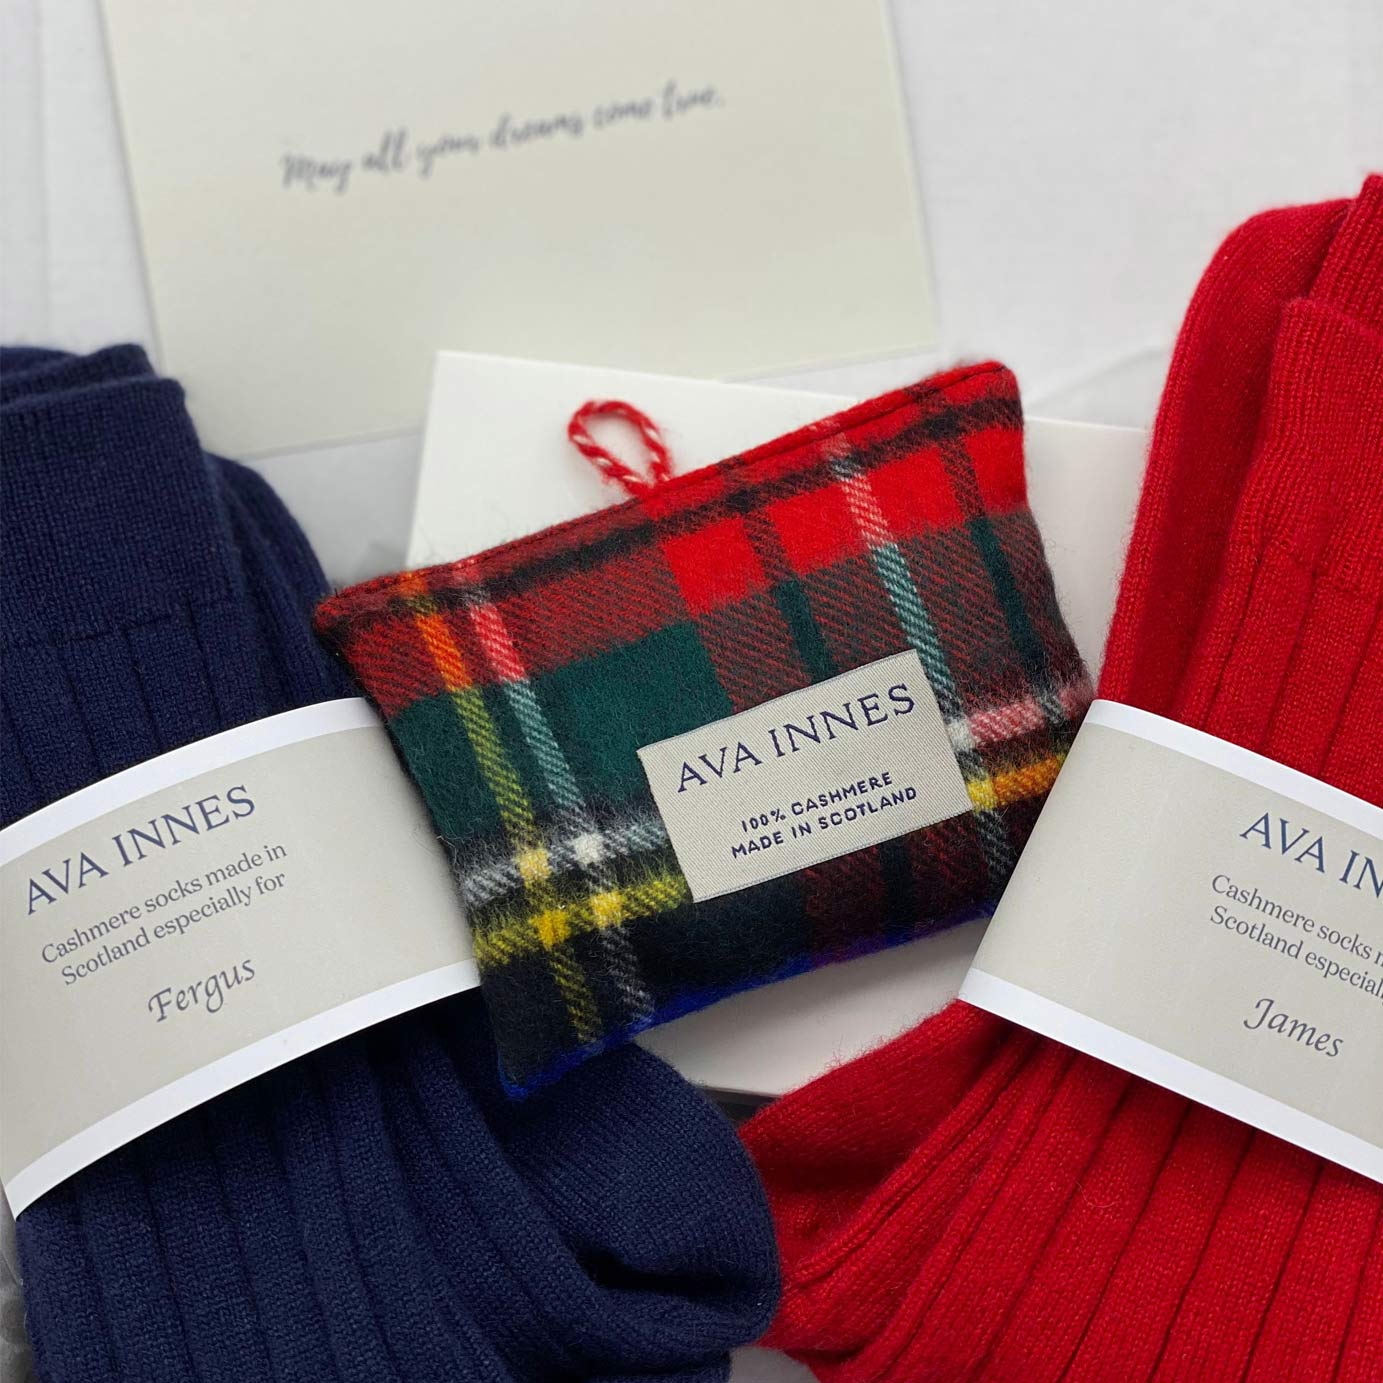 The Relax Cashmere Gift Box For Couples